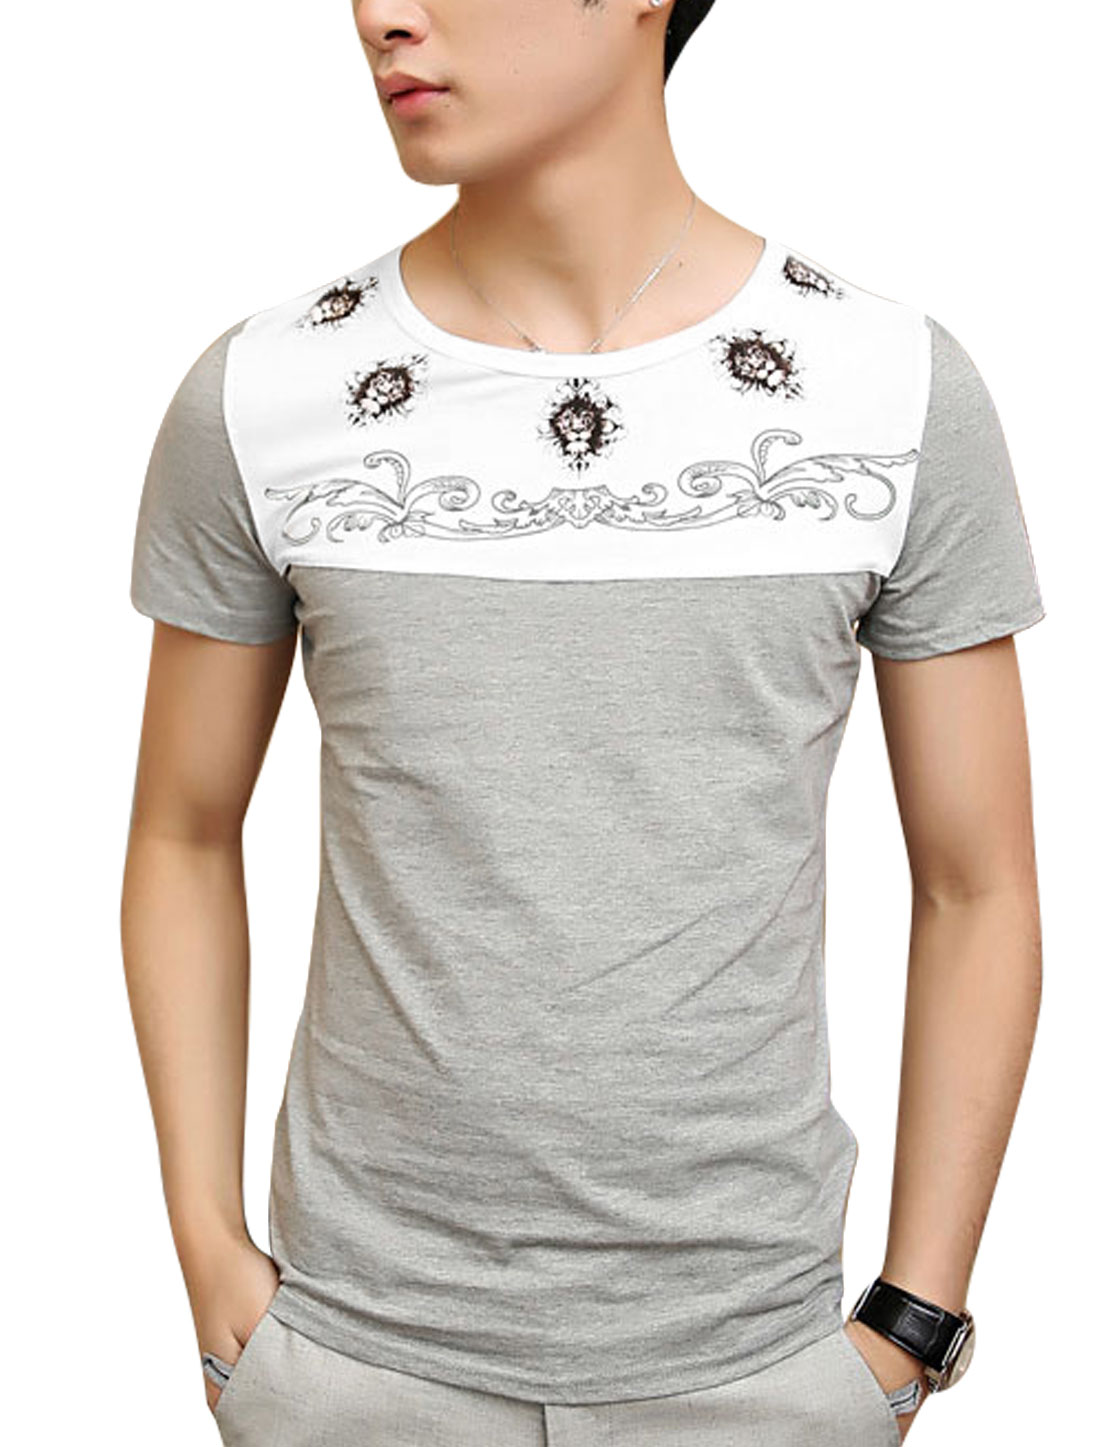 Men Floral Prints Panel Short Sleeve Summer Tee Top Light Gray S